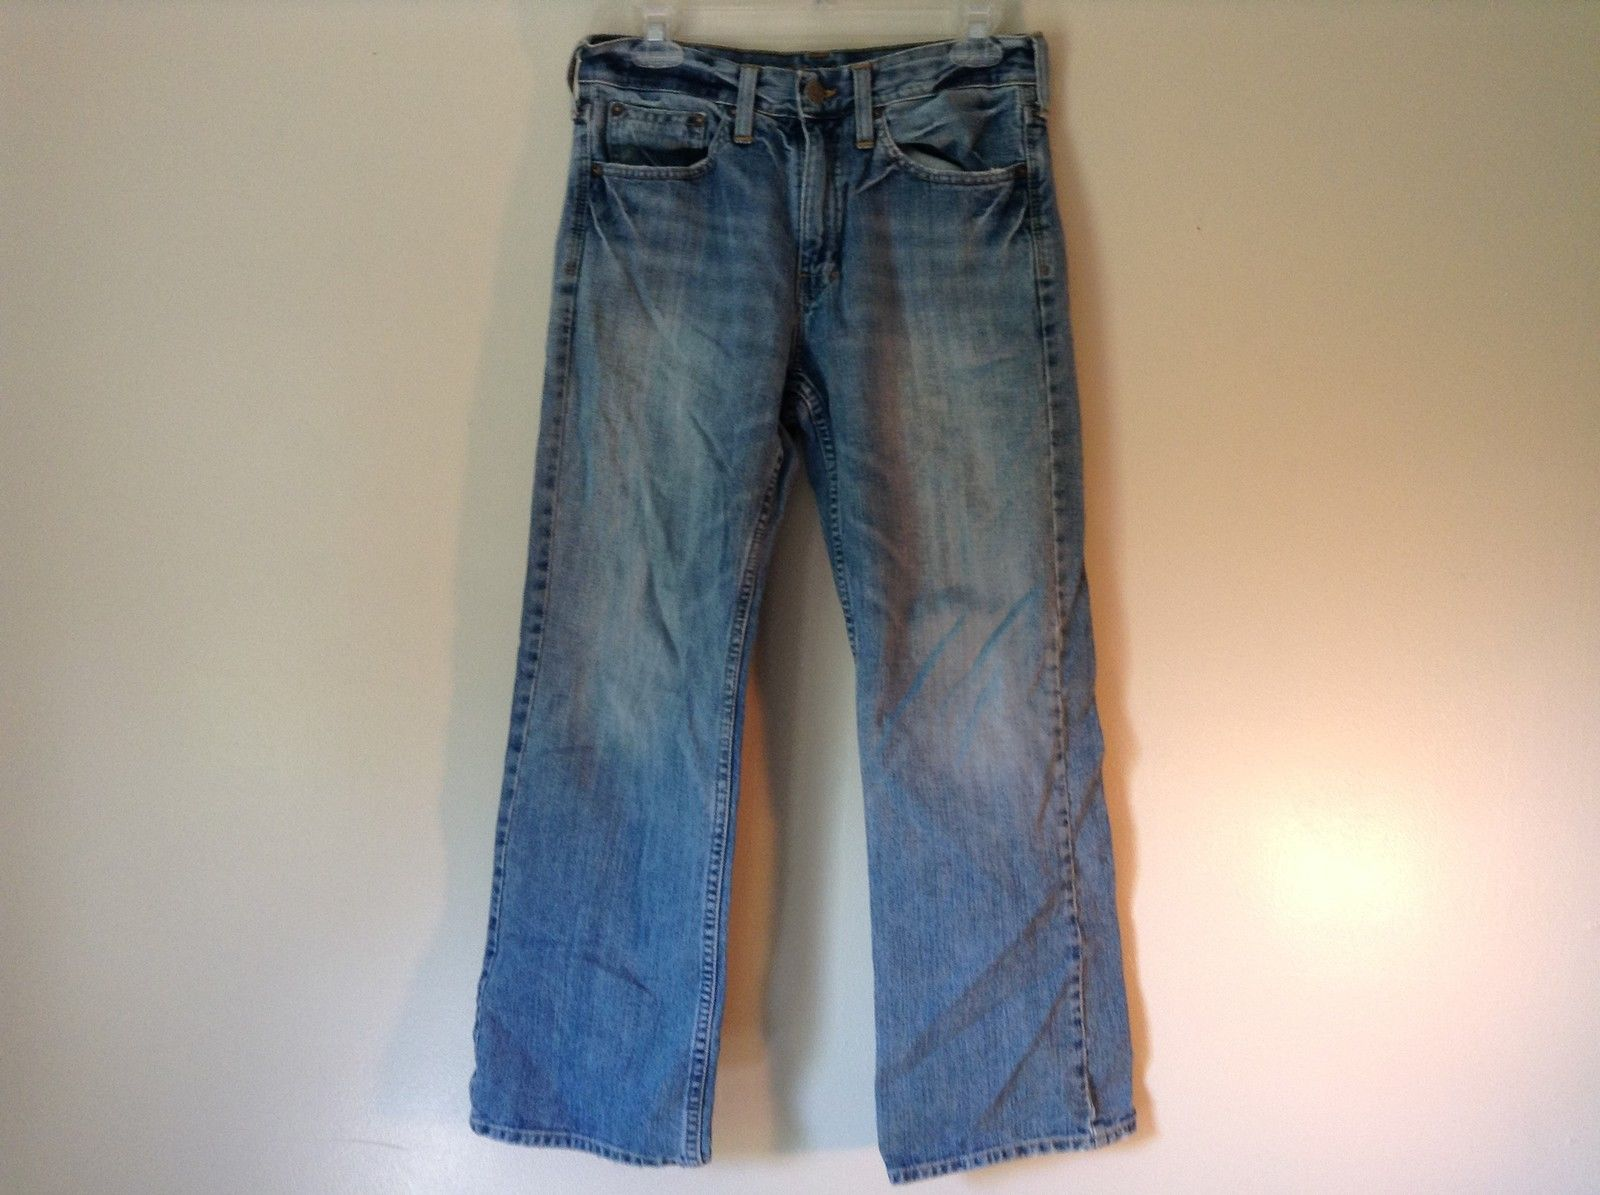 Boot Cut Style American Eagle Outfitters Blue Jeans No Size Tag See Measurements